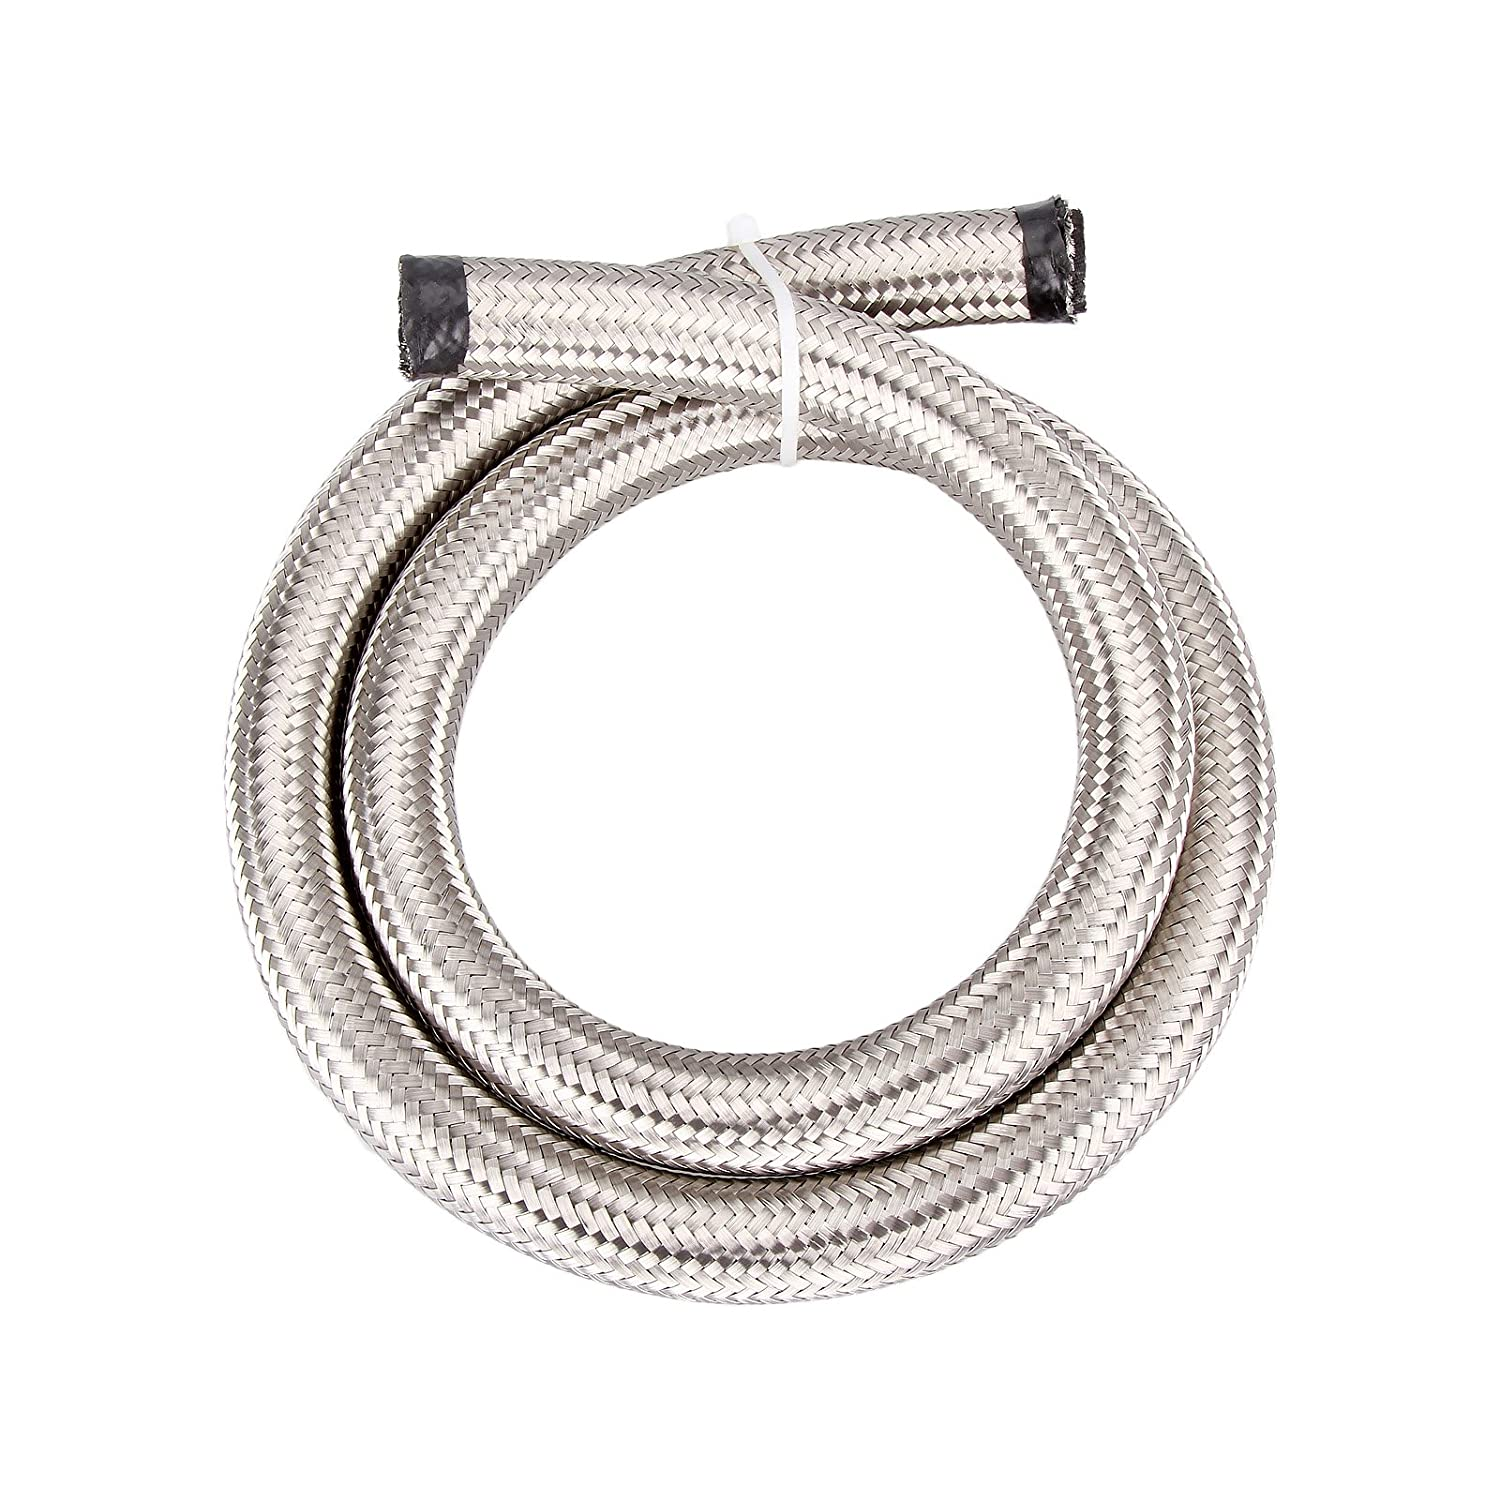 Madlife Garage Universal AN-10 AN10 #308 Stainless Steel Braided Fuel Line Oil Gas Hose each 1 Meter/3.3 Ft Long